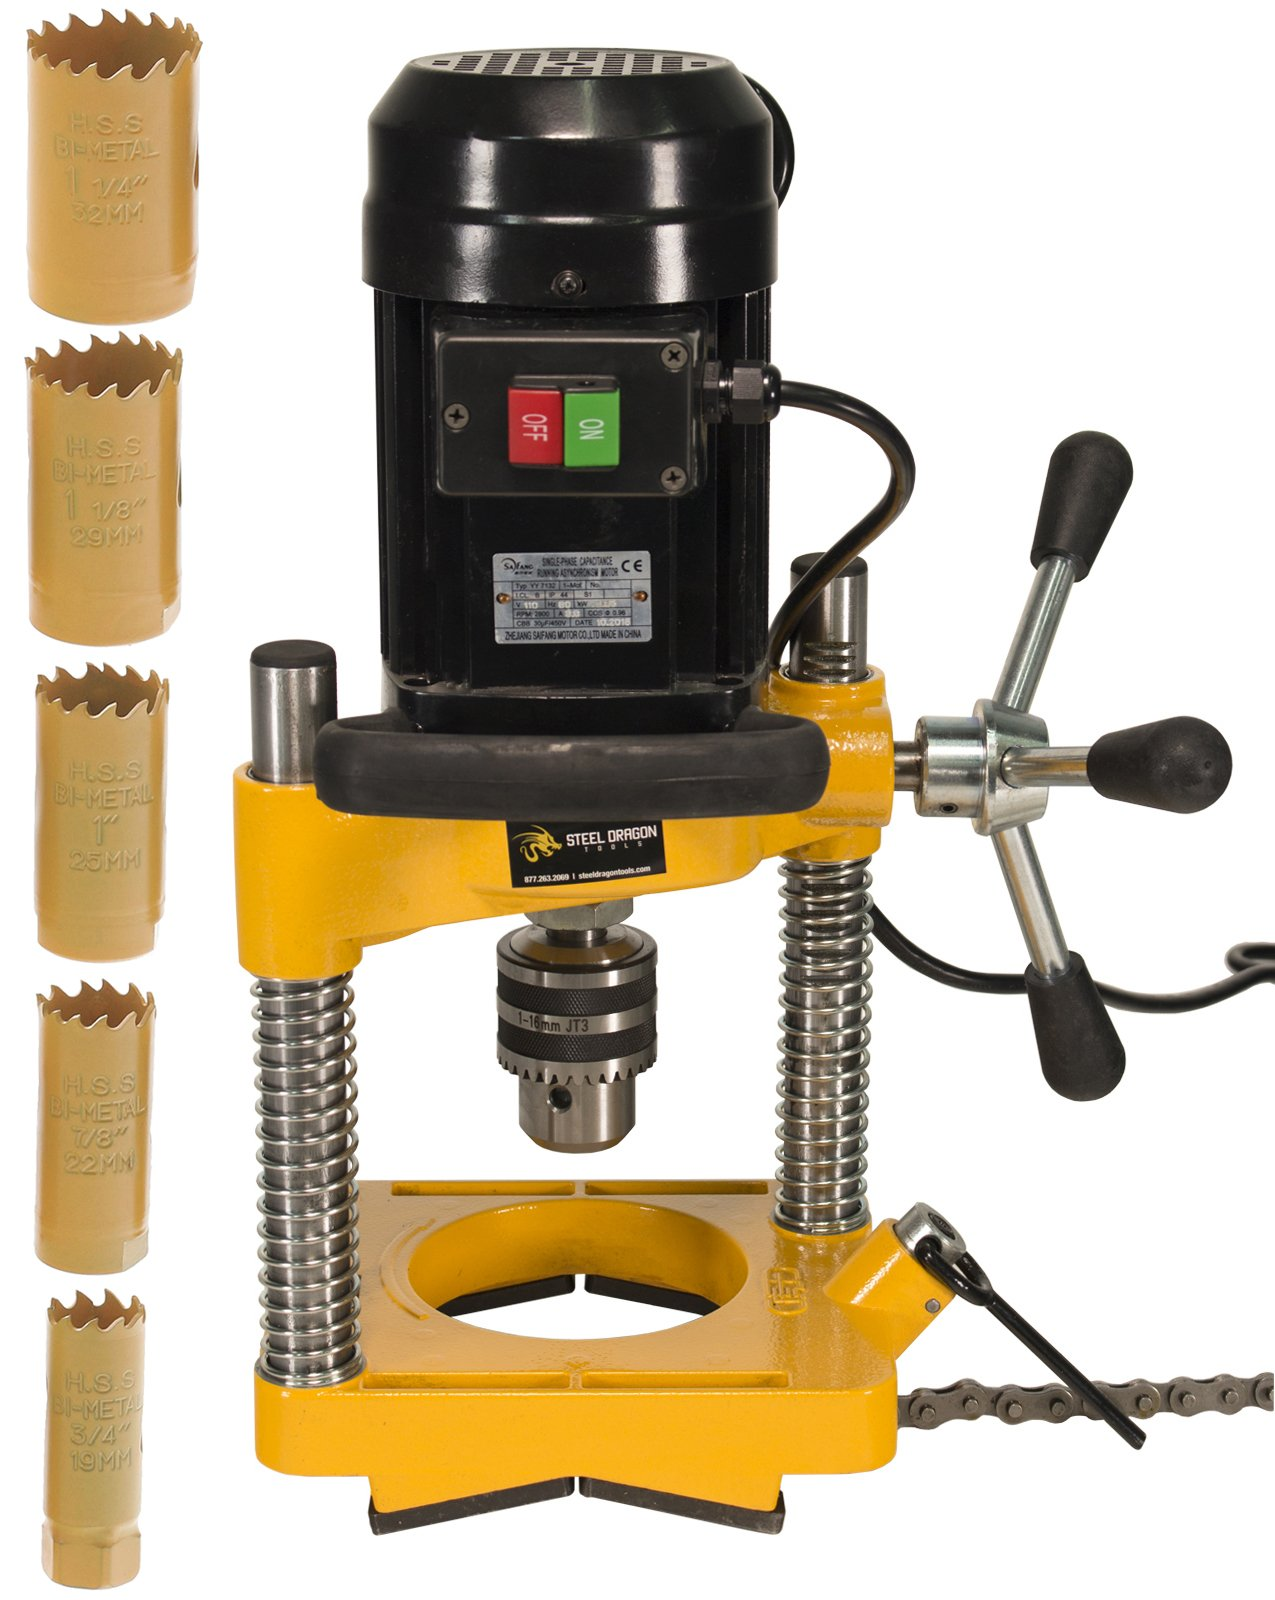 Steel Dragon Tools JK114 Pipe Hole Cutter with 6 Piece Cutter Set up to 1-1/4''